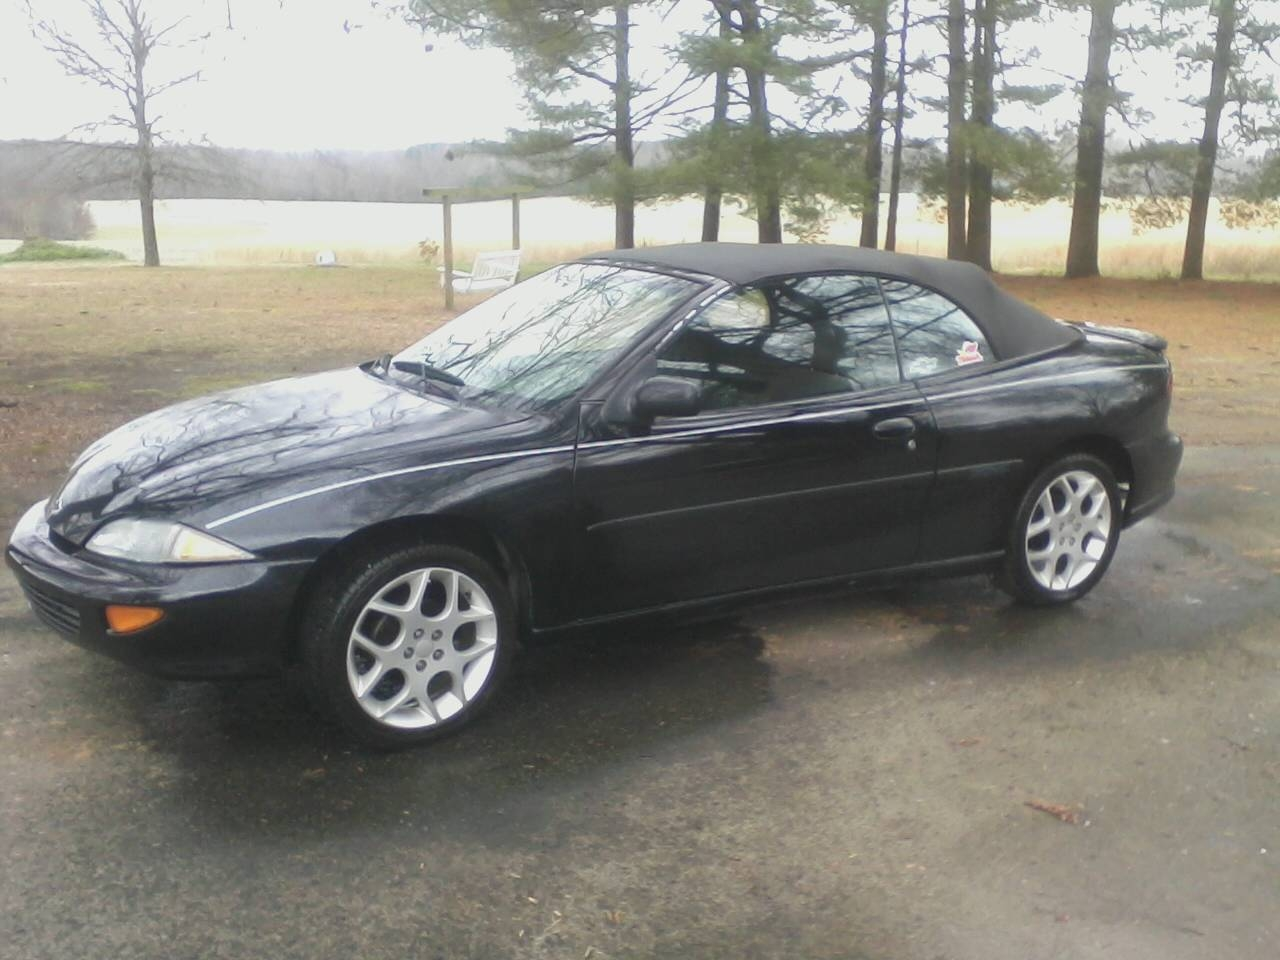 Cavalier chevy cavalier 97 : 1999 Chevrolet Cavalier convertible (j) – pictures, information ...